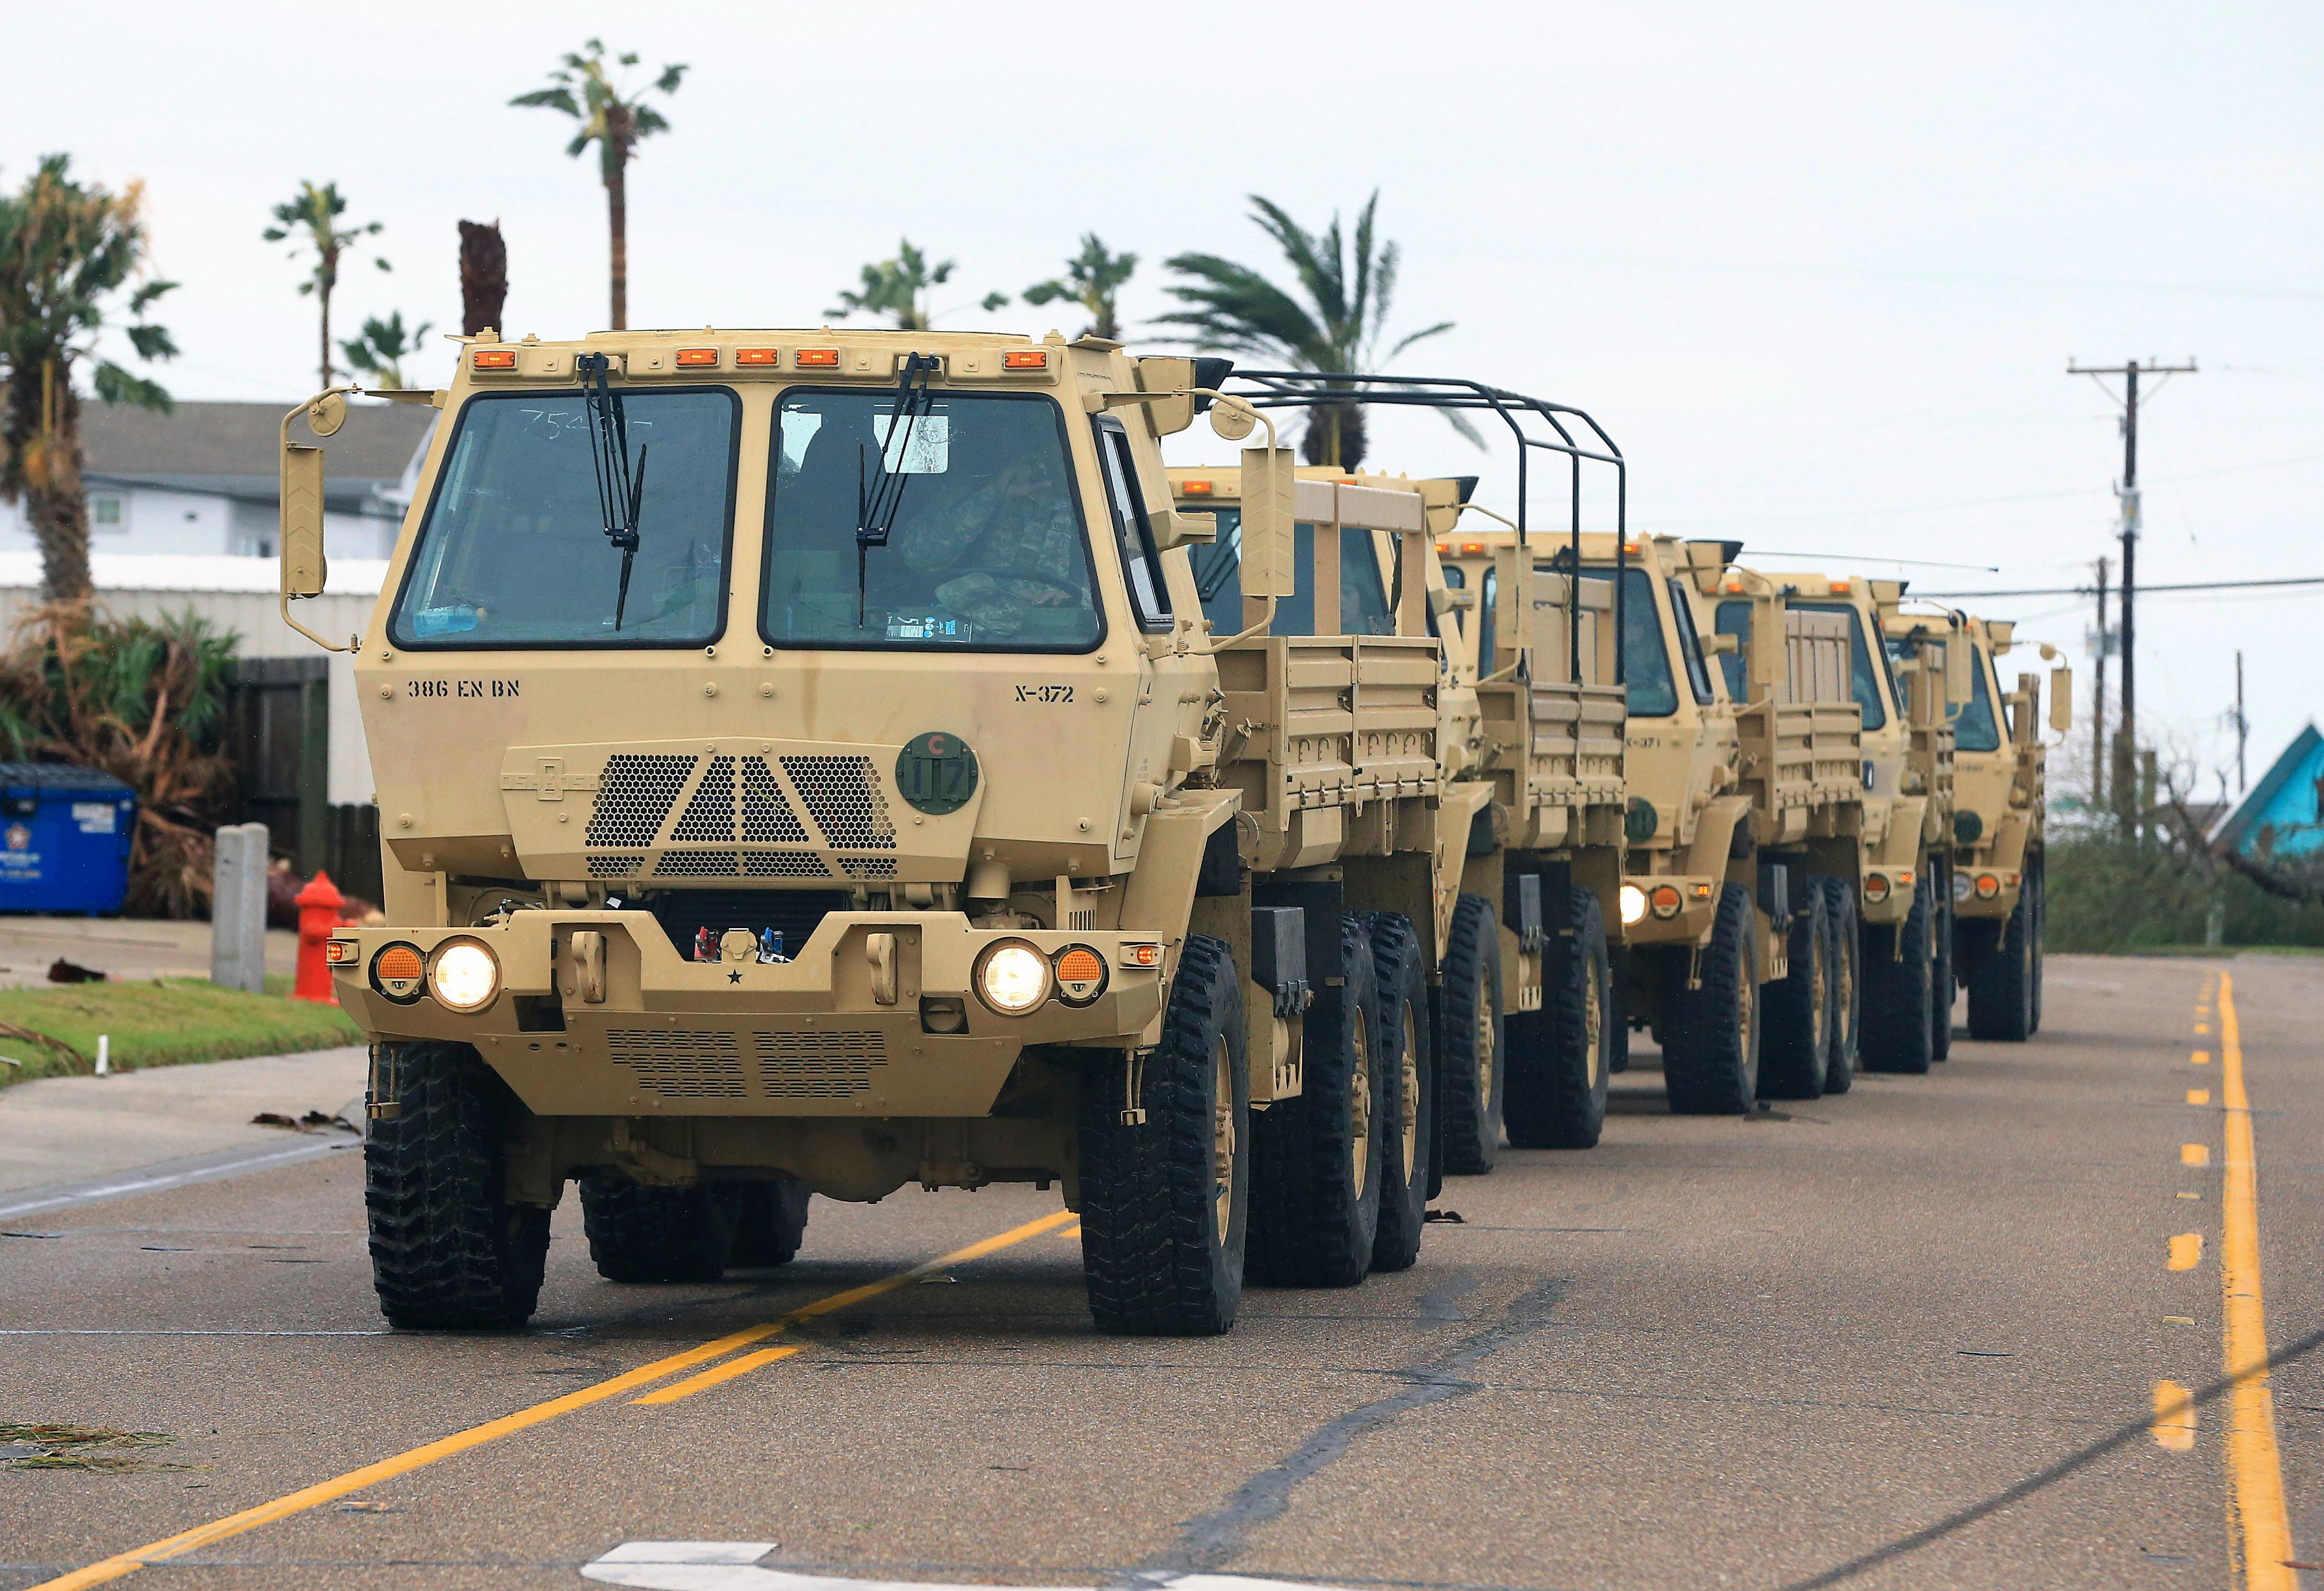 Members of the National Guard arrive at Port Aransas after Hurricane Harvey landed in the Coast Bend area on Saturday, Aug. 26, 2017, in Port Aransas, Texas. The National Hurricane Center has downgraded Harvey from a Category 1 hurricane to a tropical storm. Harvey came ashore Friday along the Texas Gulf Coast as a Category 4 storm with 130 mph winds, the most powerful hurricane to hit the U.S. in more than a decade. (Gabe Hernandez/Corpus Christi Caller-Times via AP)